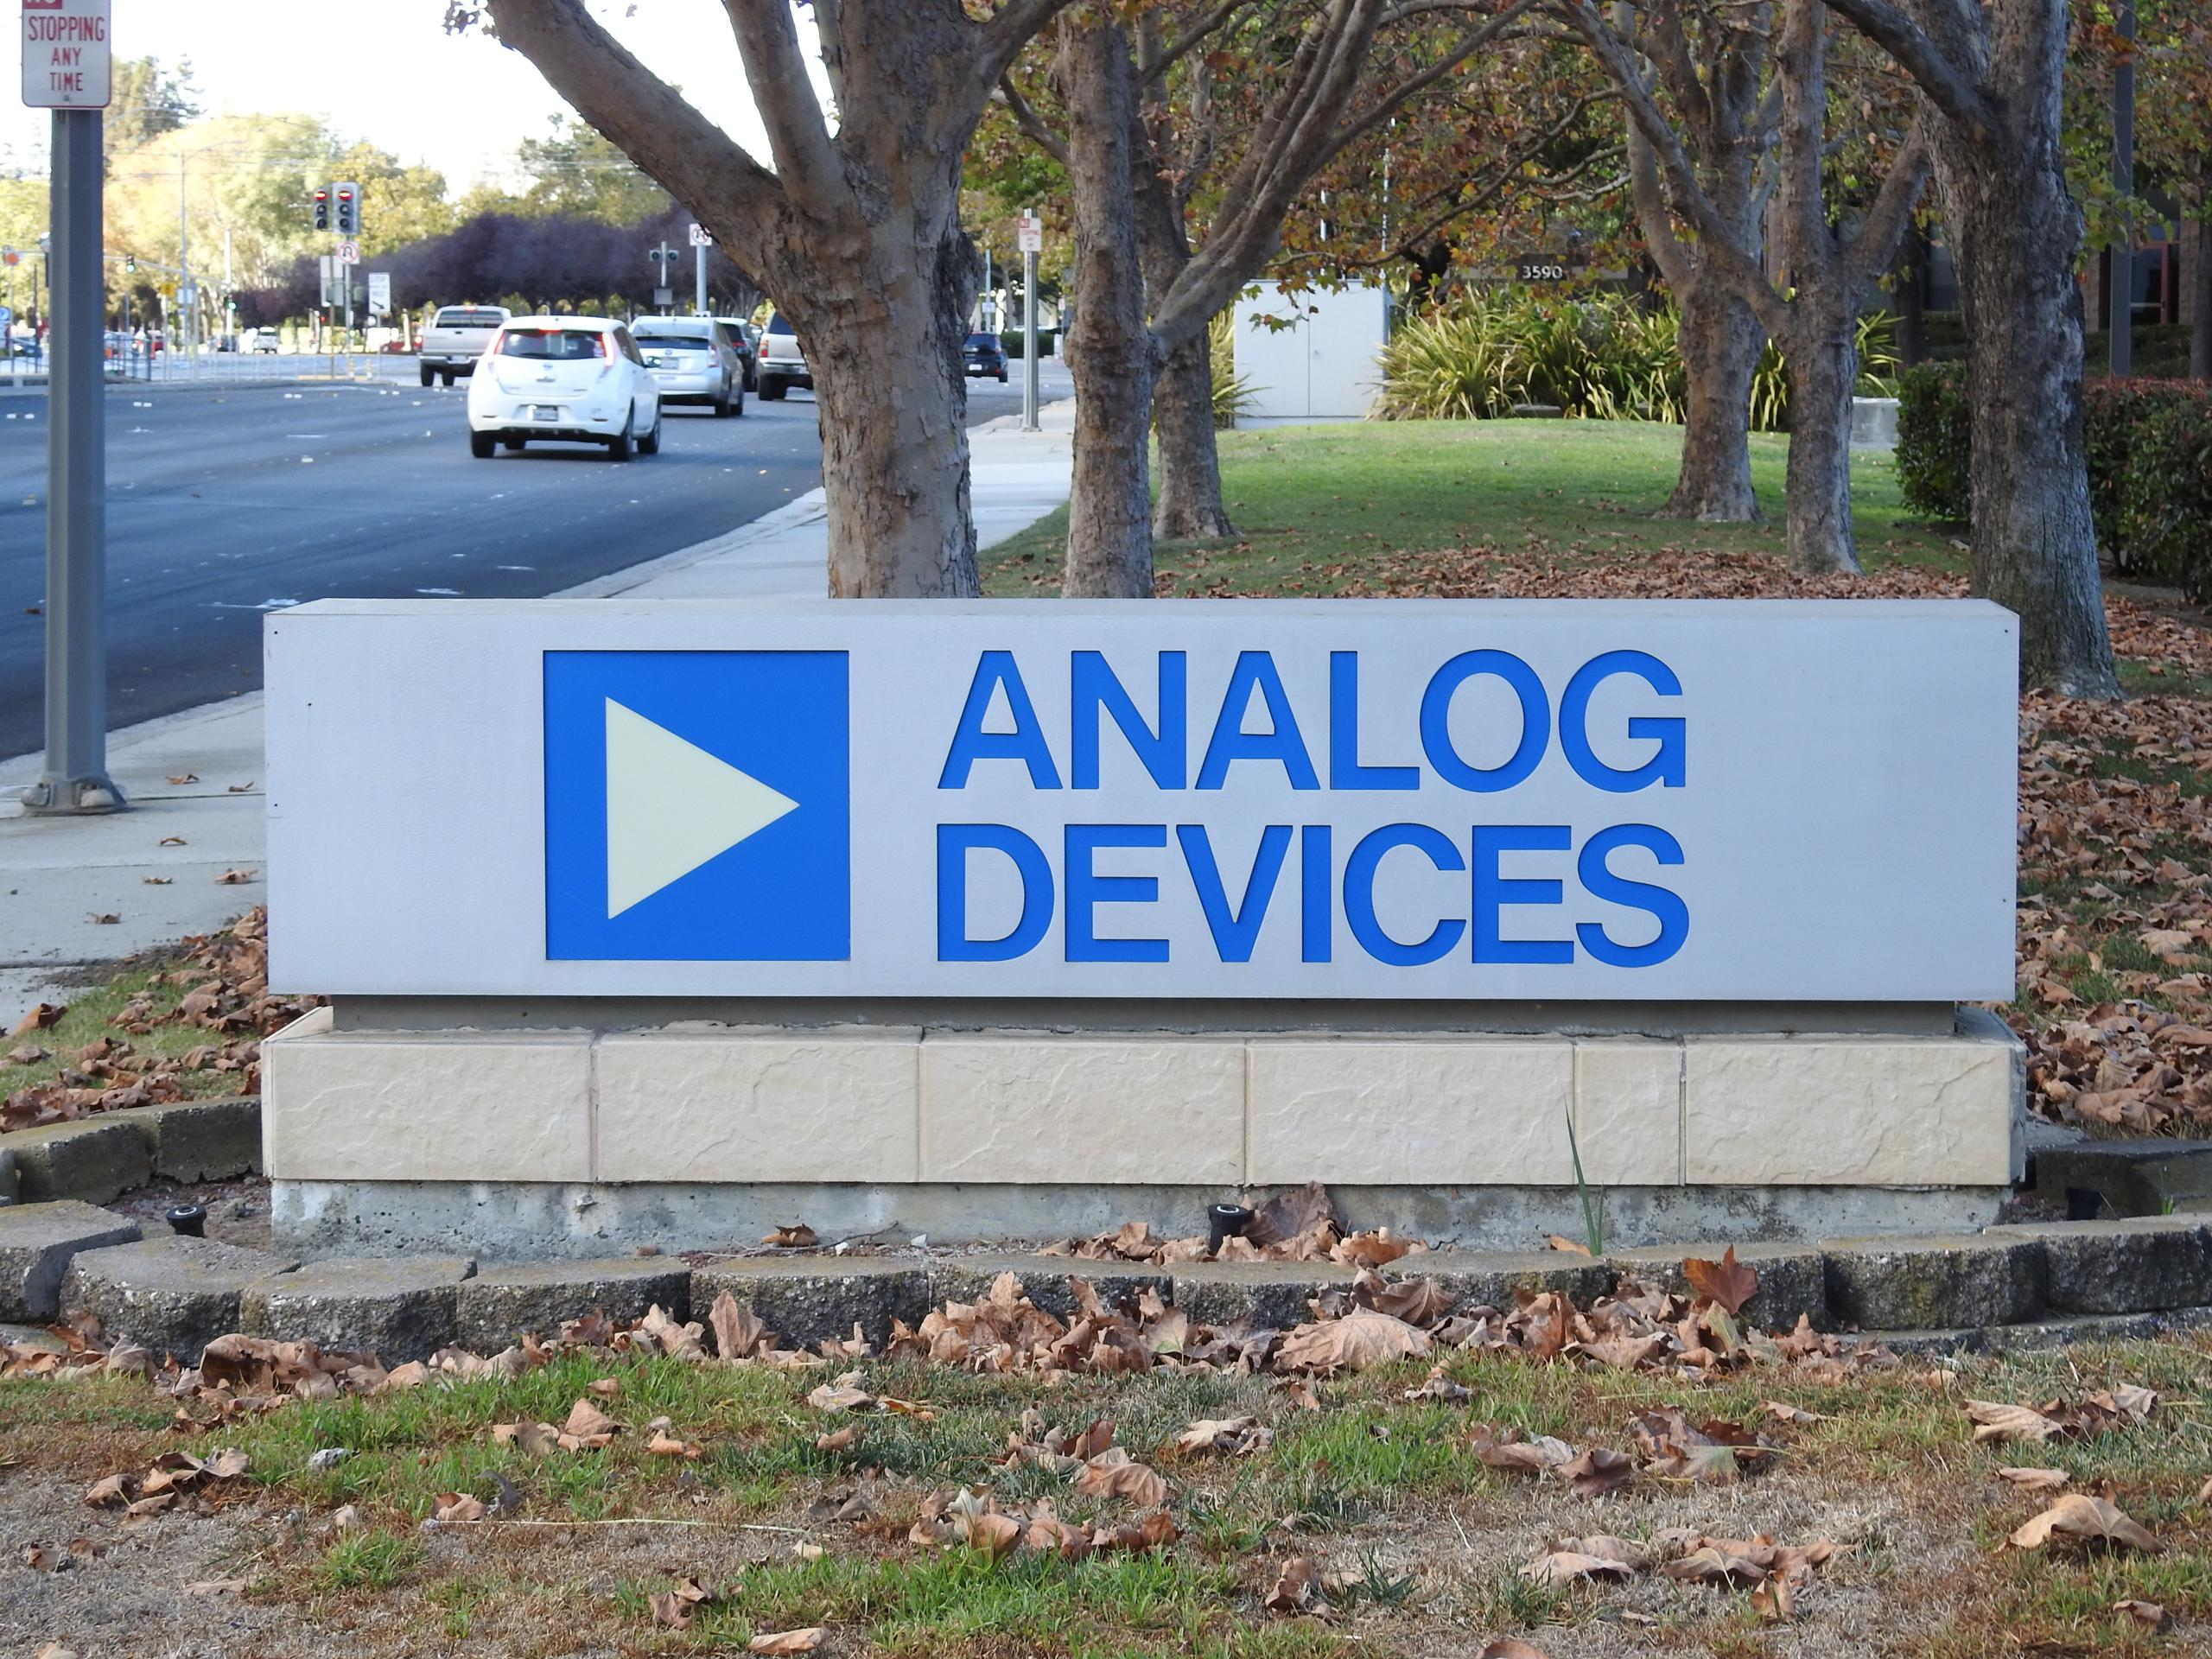 Entrance to Analog Devices' office in San Jose, California.